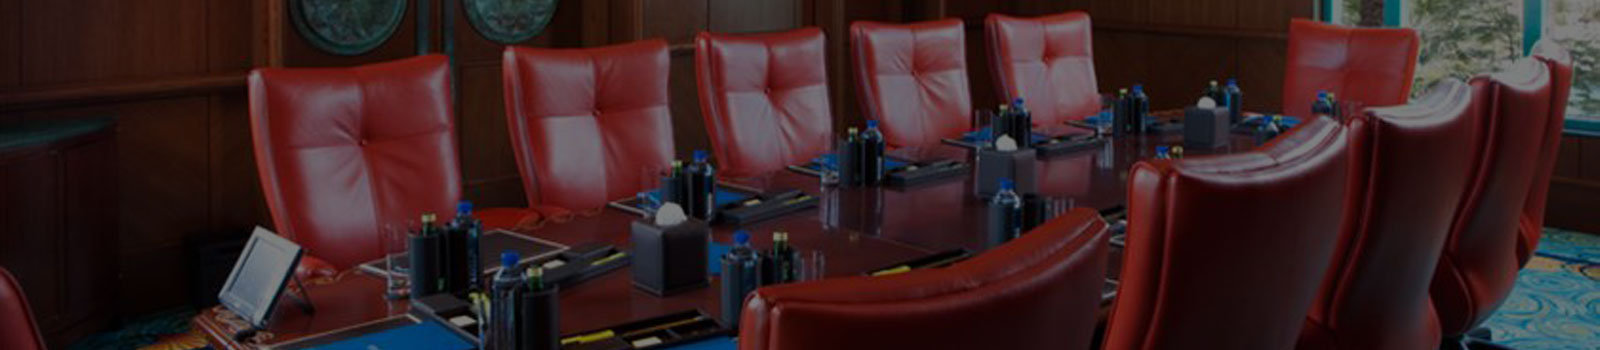 Atlantis-The-Palm-Boardroom